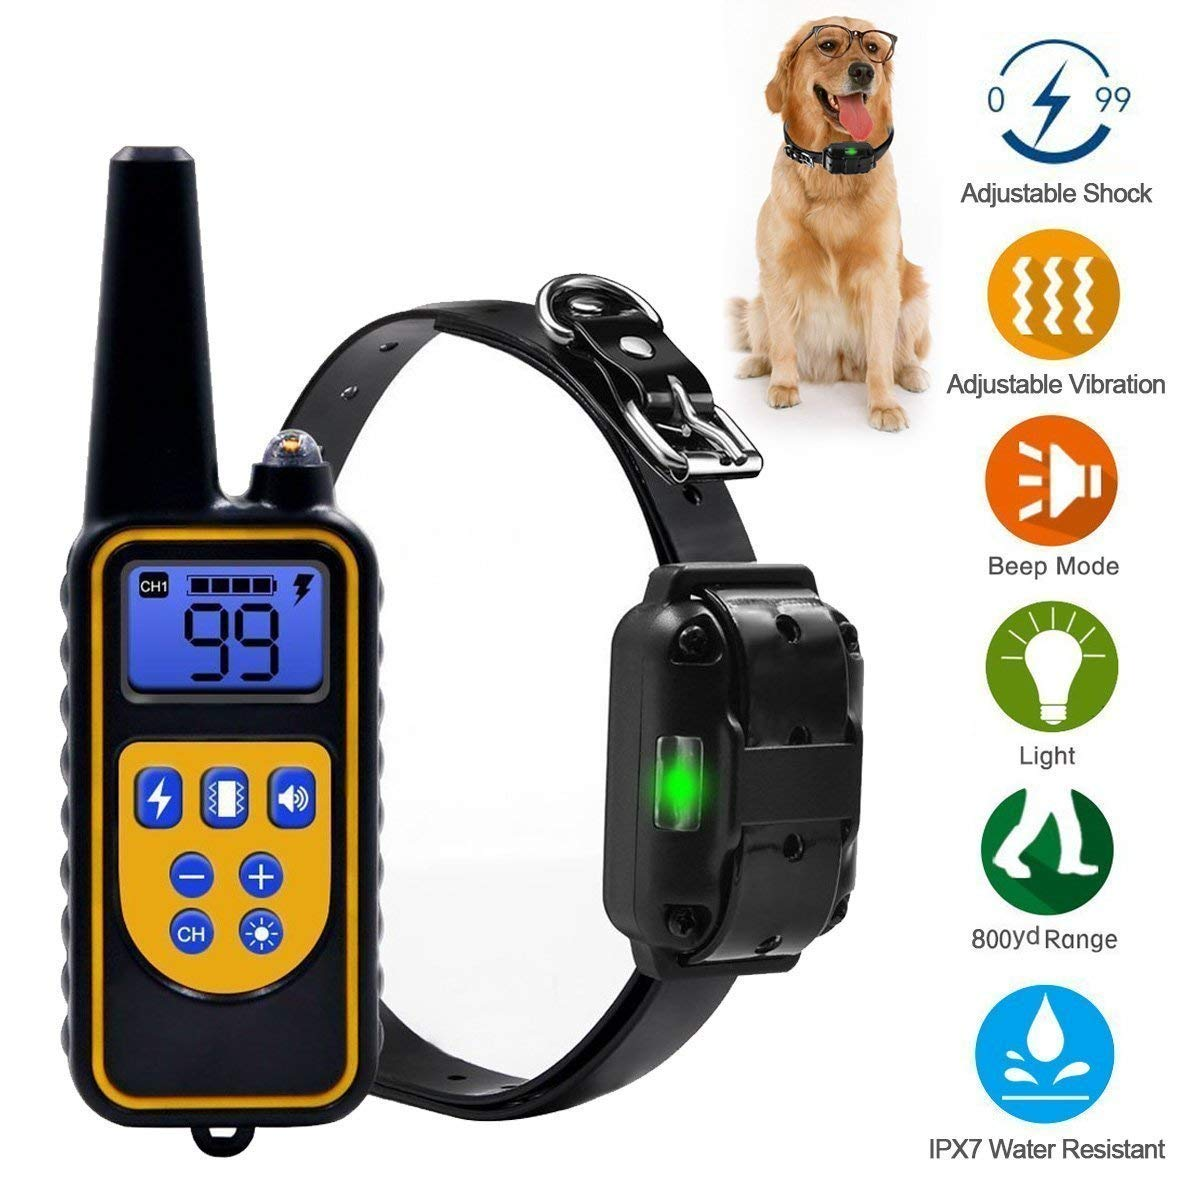 PetDepot Dog training collar with remote Remote Dog Training Collar, Rechargeable and Waterproof Pet Training Collar For Dogs All Sizes, Effective Dog Training Equipment